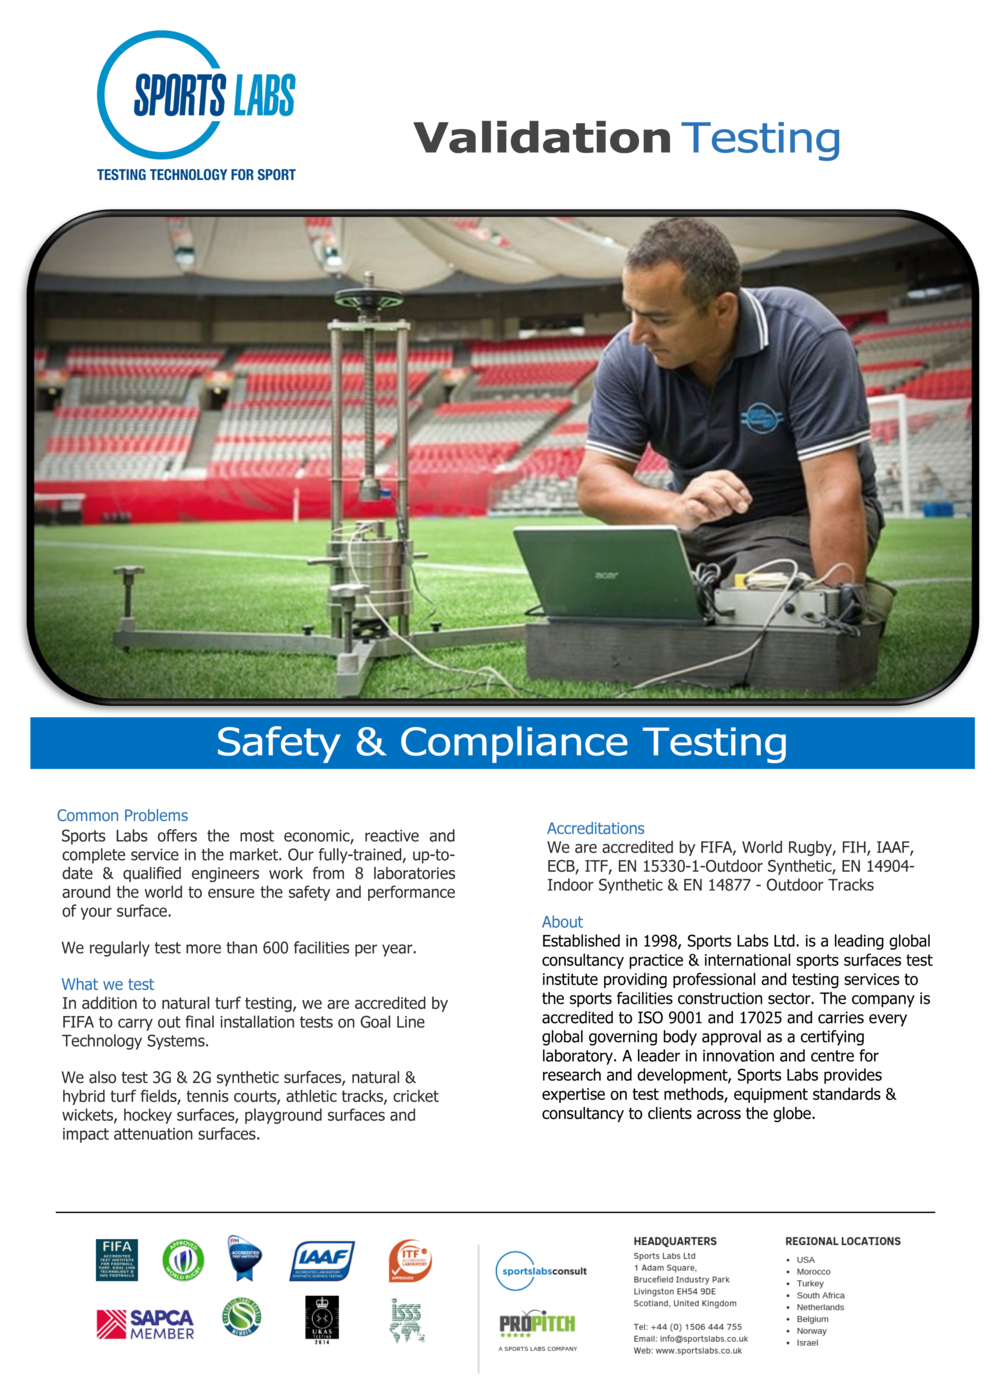 SafetyComplianceTesting.SportsLabs.png